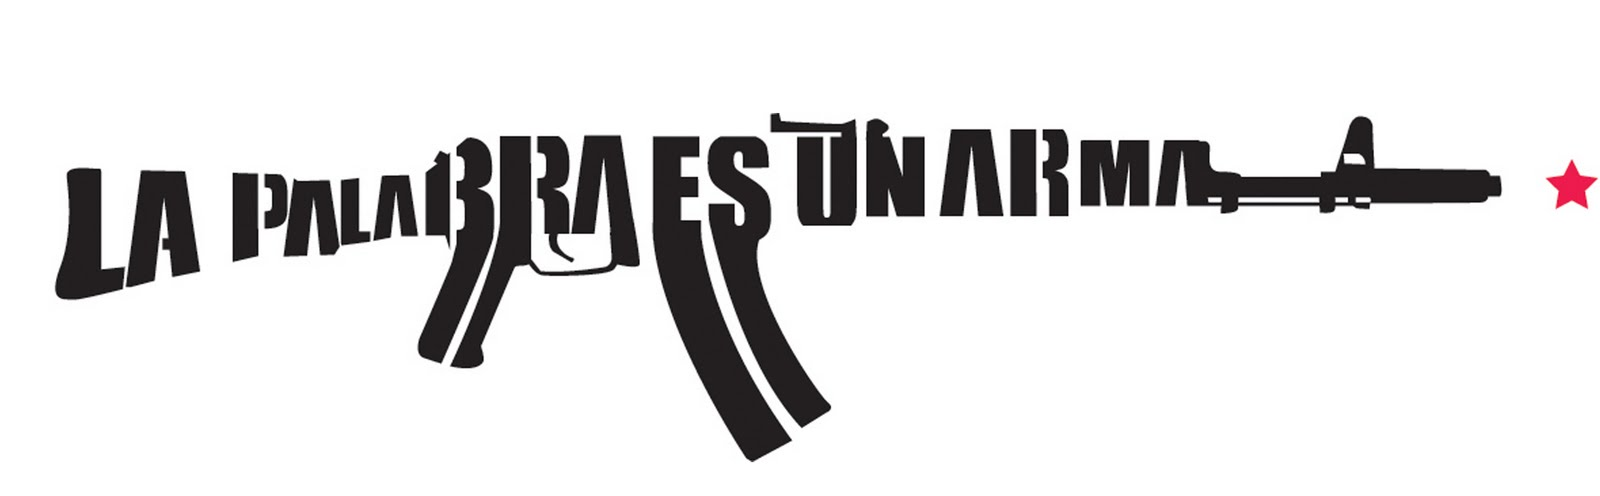 Communicational Guerrilla logo